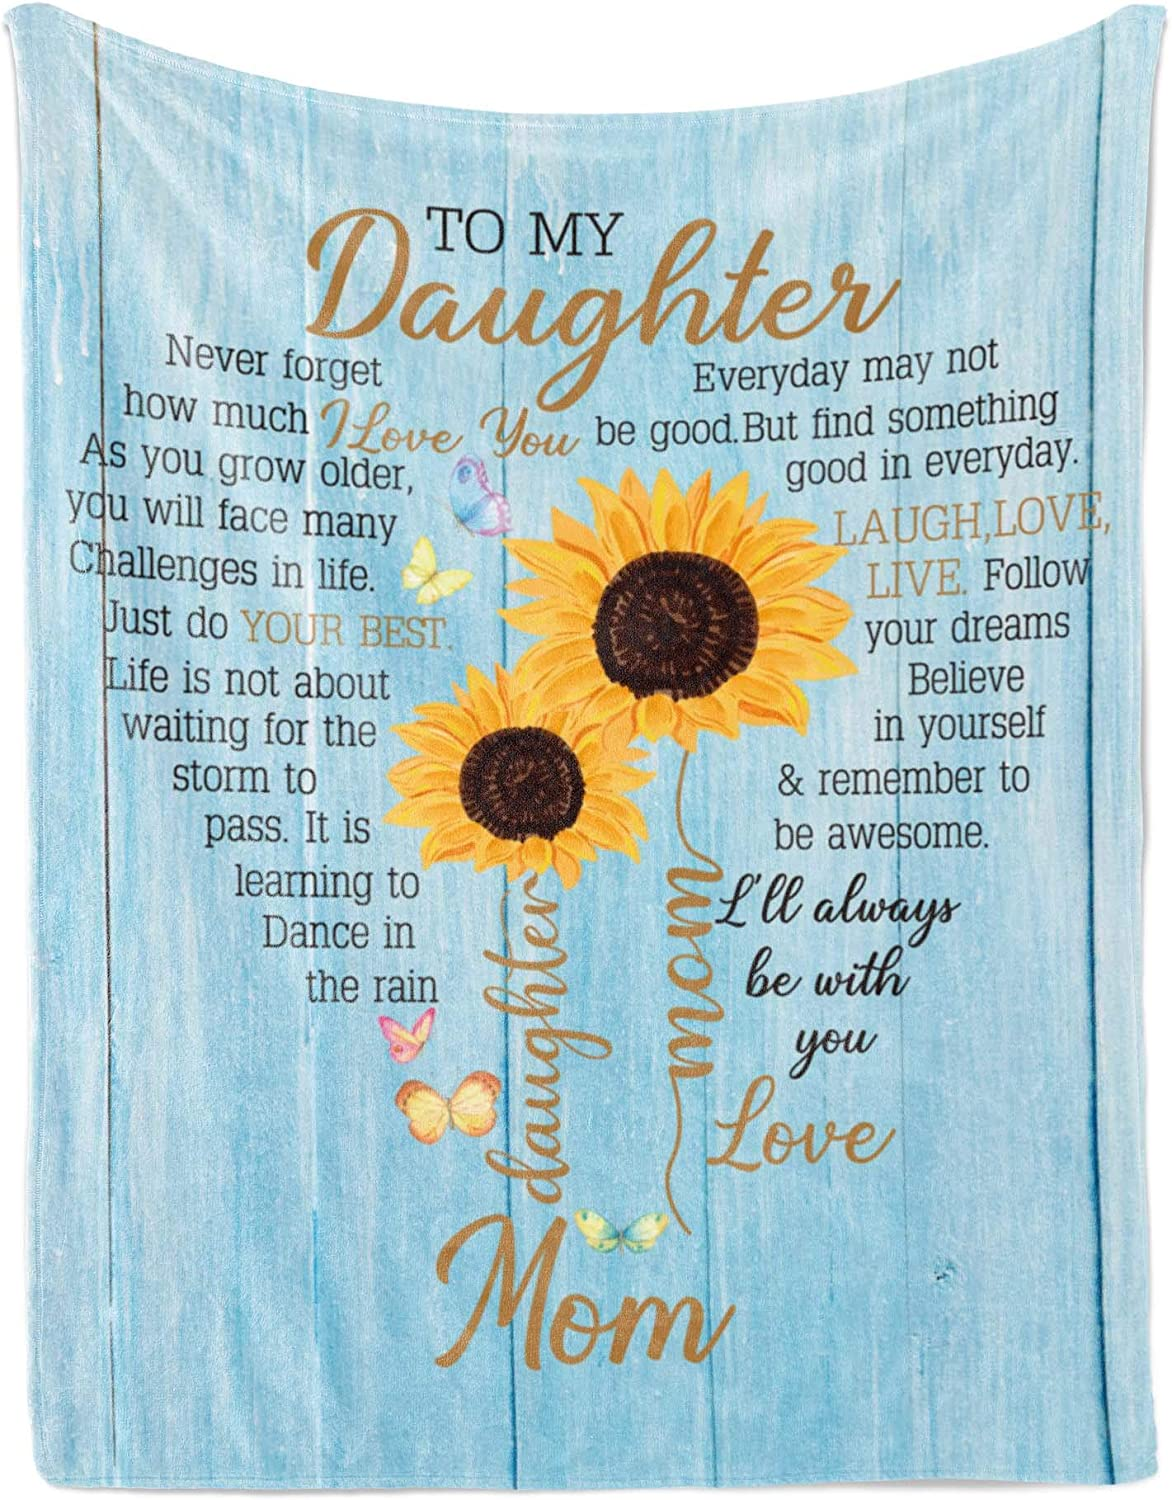 Superlatite Flannel Blanket Trust – Gift from Daughter to Personalized Fleece Mom